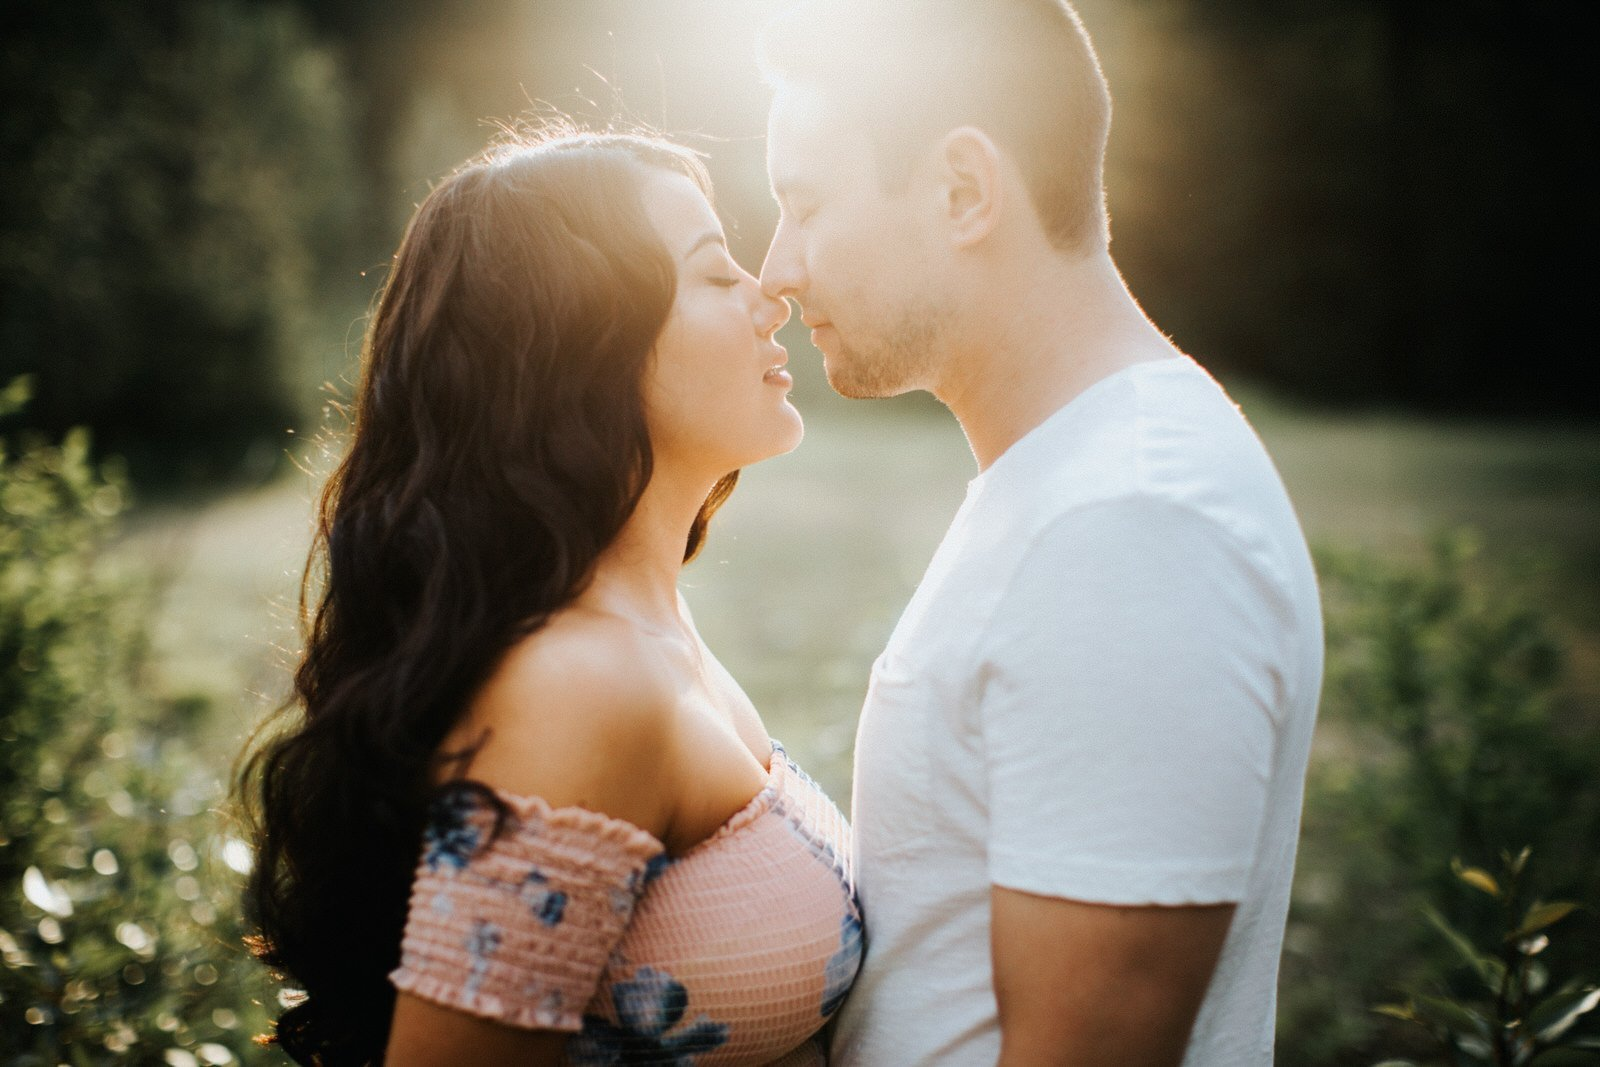 Sunset flare during an engagement session